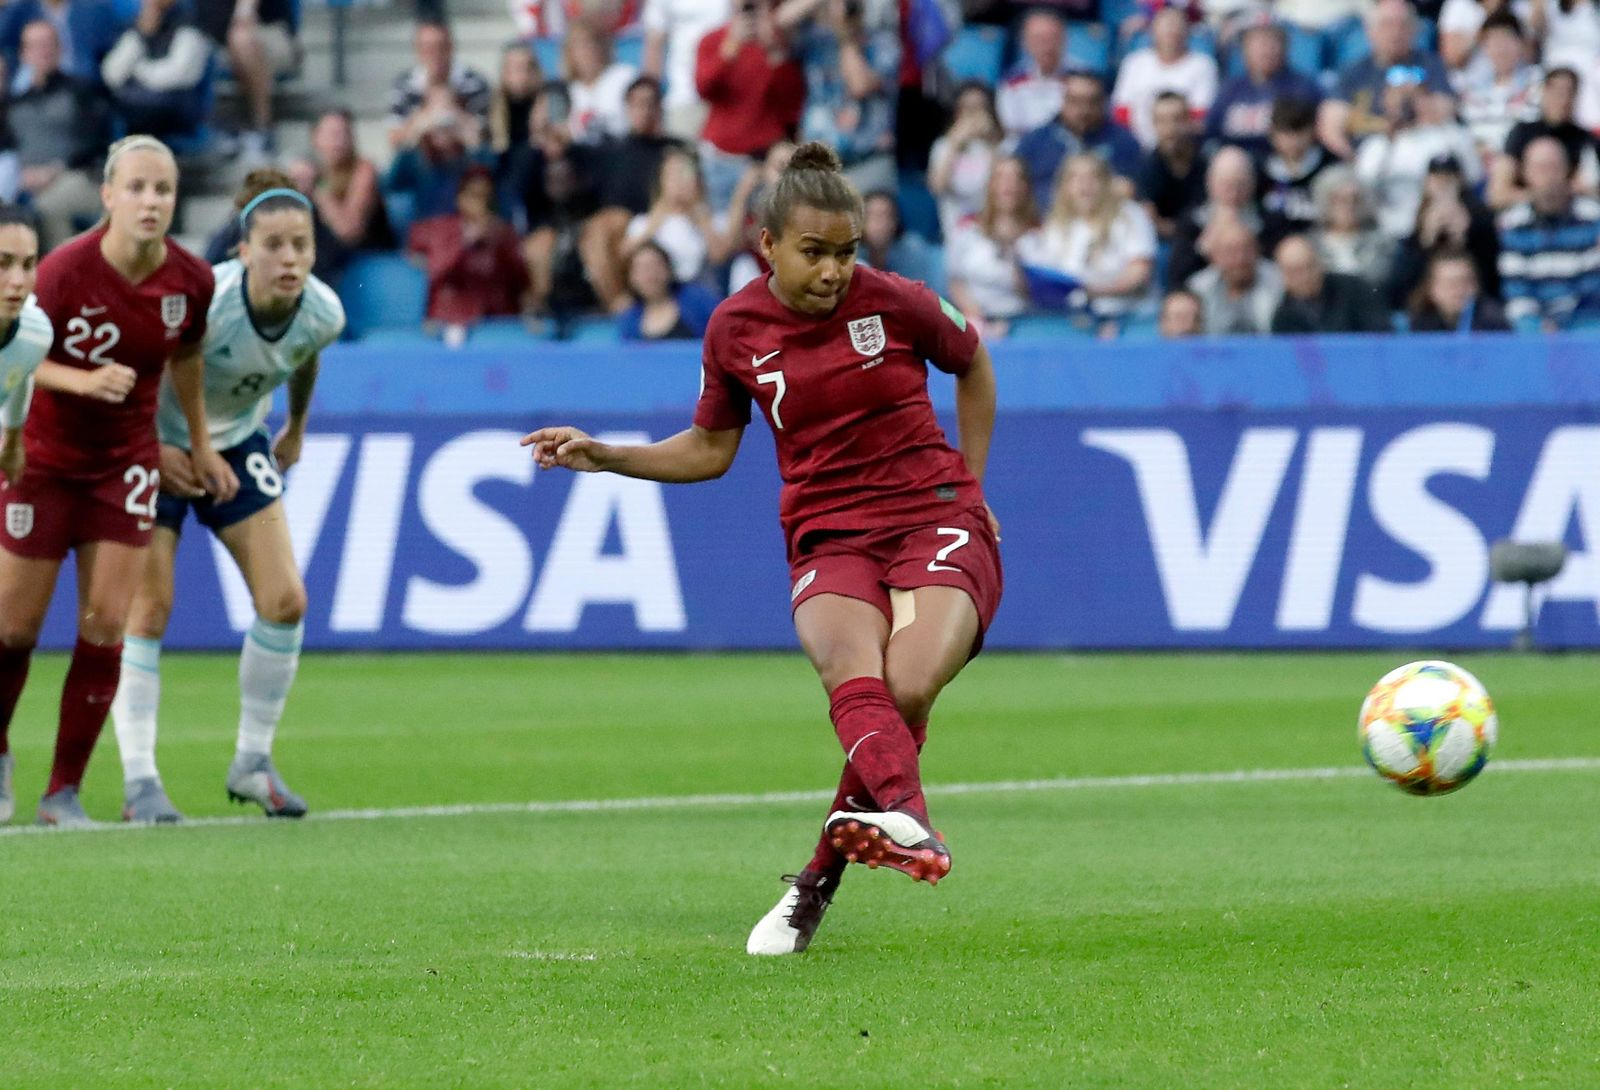 England's Nikita Parris, center, fails to score a penalty goal during the Women's World Cup Group D soccer match between England and Argentina at the Stade Oceane in Le Havre, France, Friday, June 14, 2019. (AP Photo/Alessandra Tarantino)